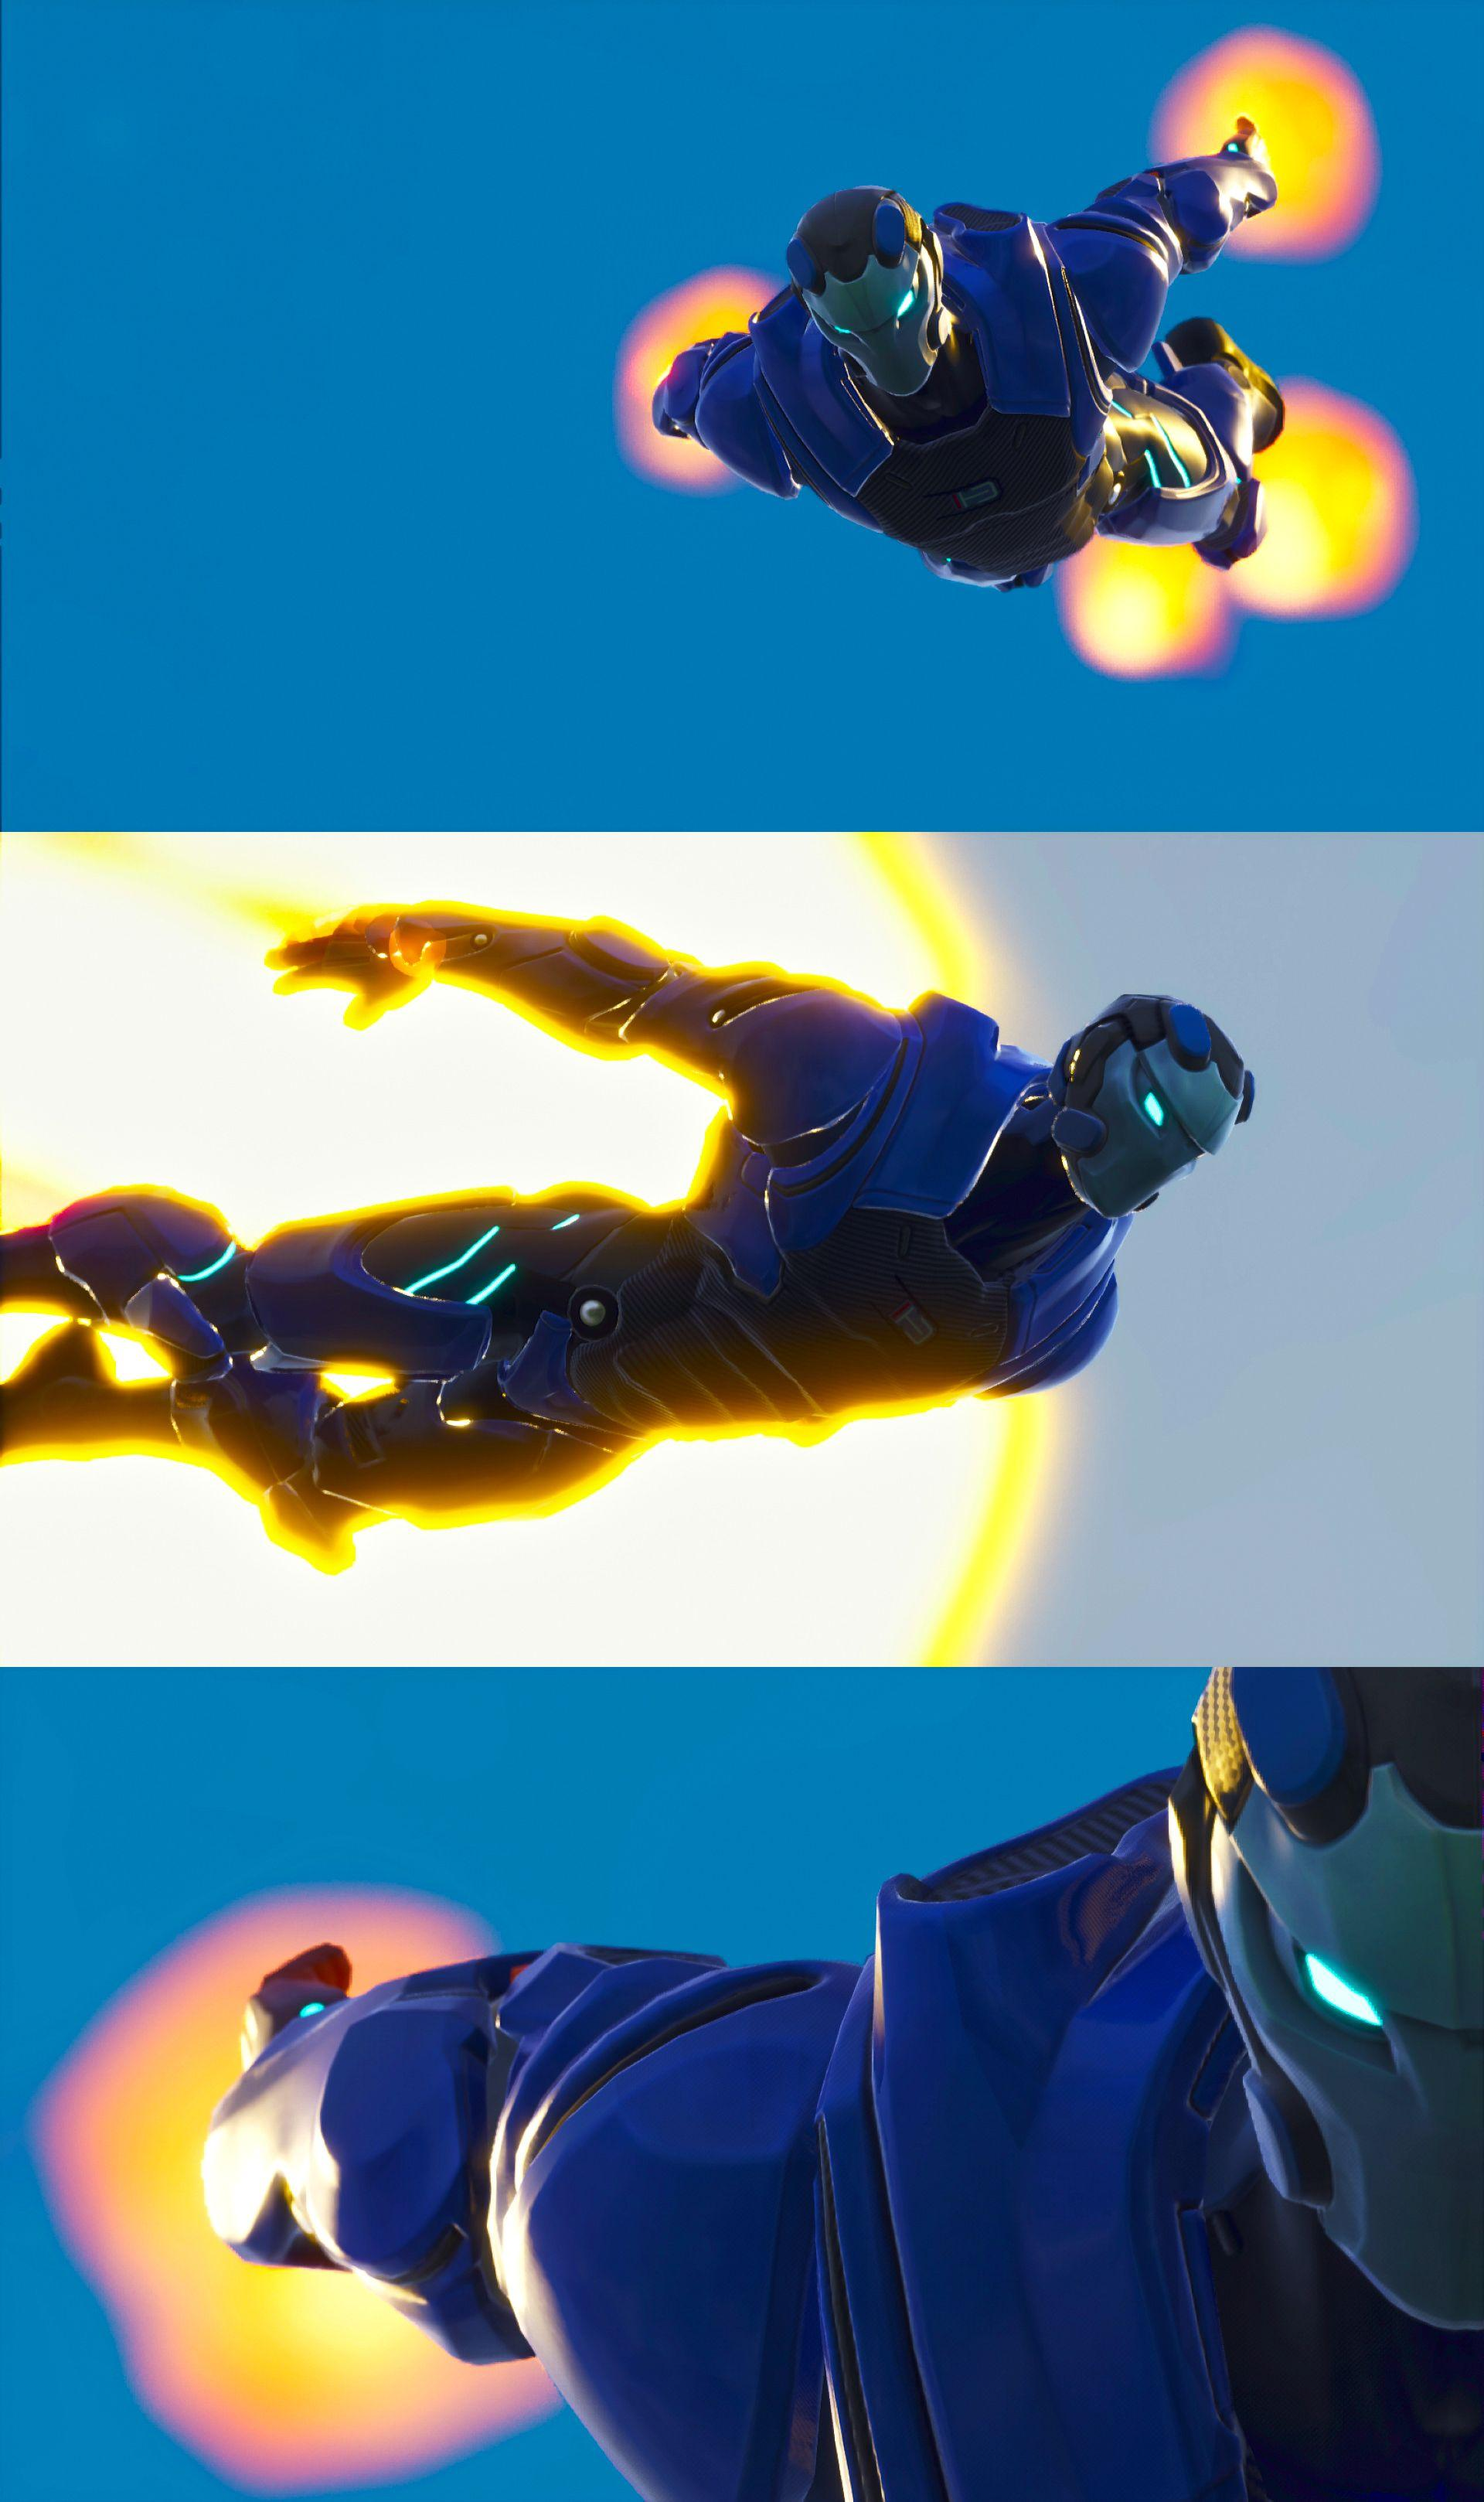 Few Shots of the Carbide Skin With The Helmet On - Imgur